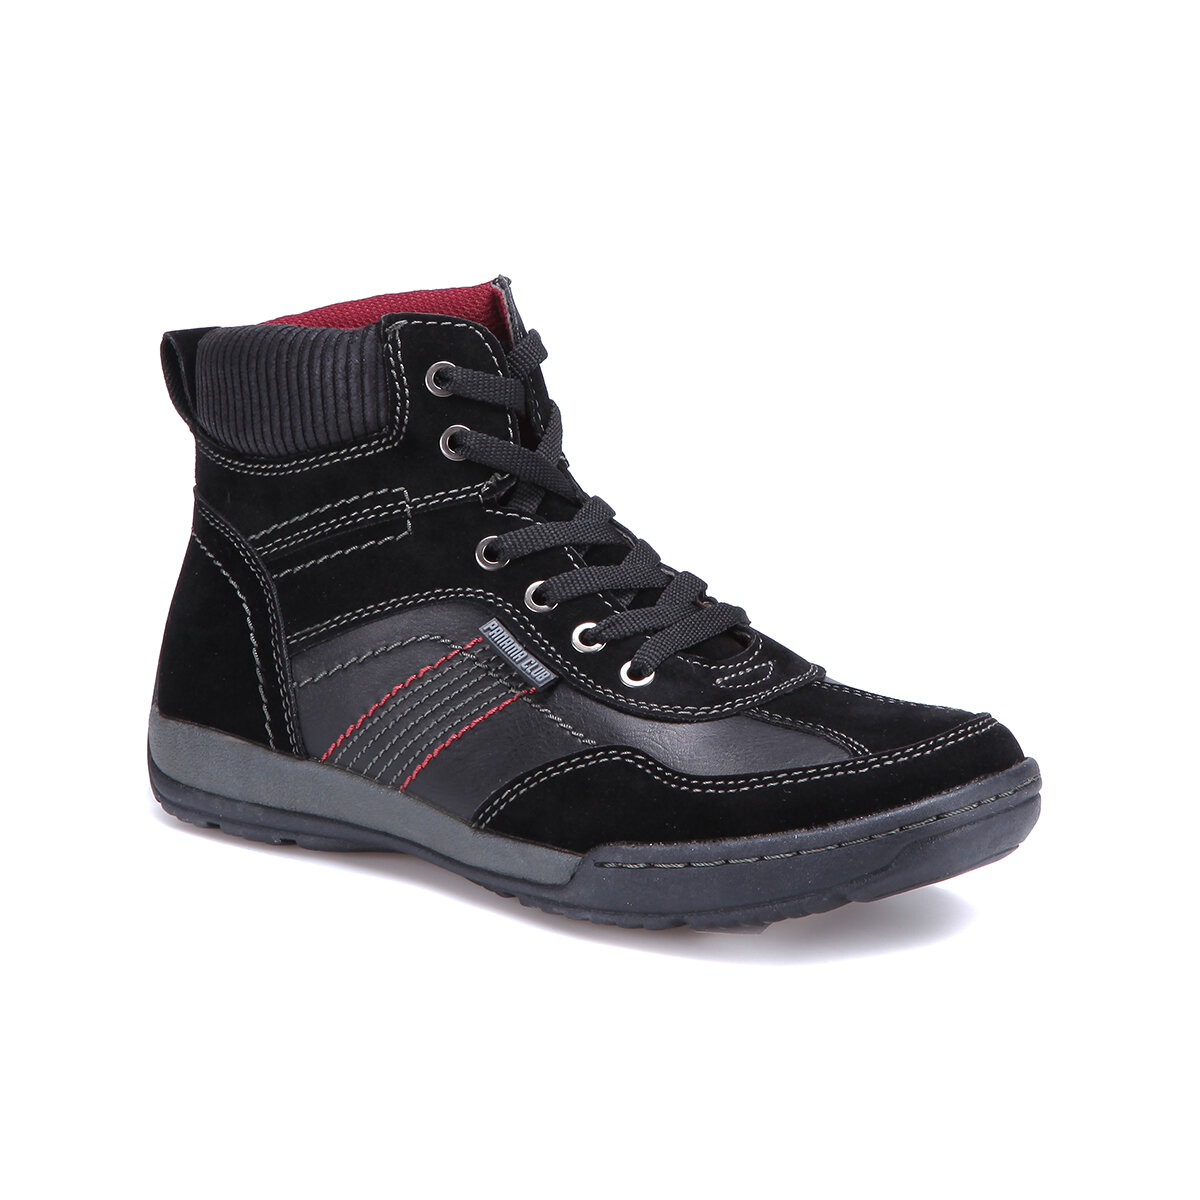 FLO SD9638 Black Men 'S Sneaker Shoes Panama Club